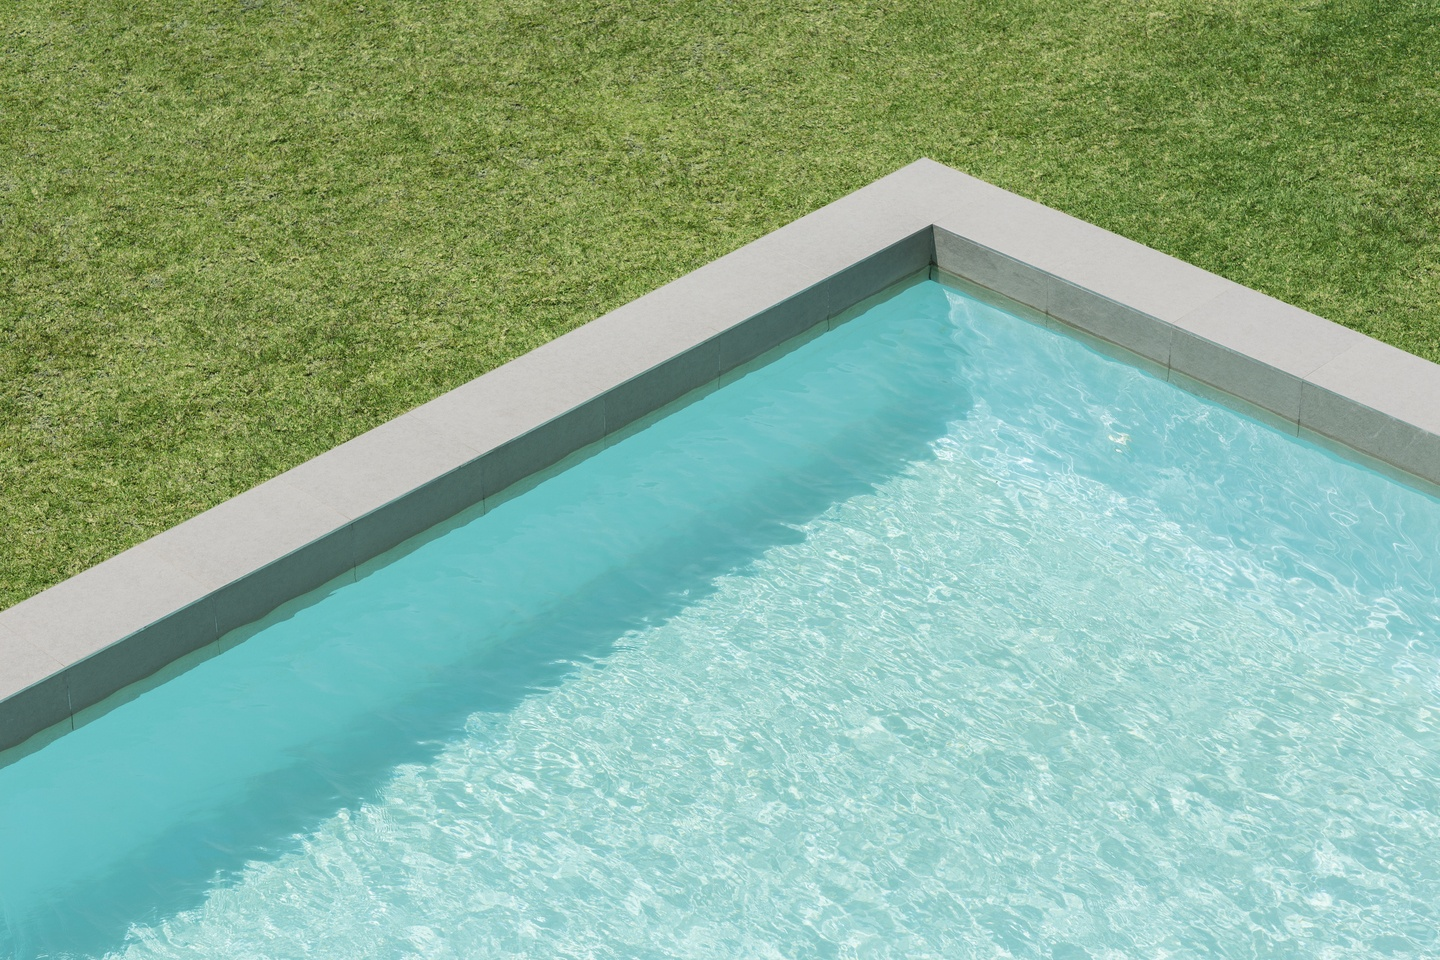 The corner of an in-ground swimming pool